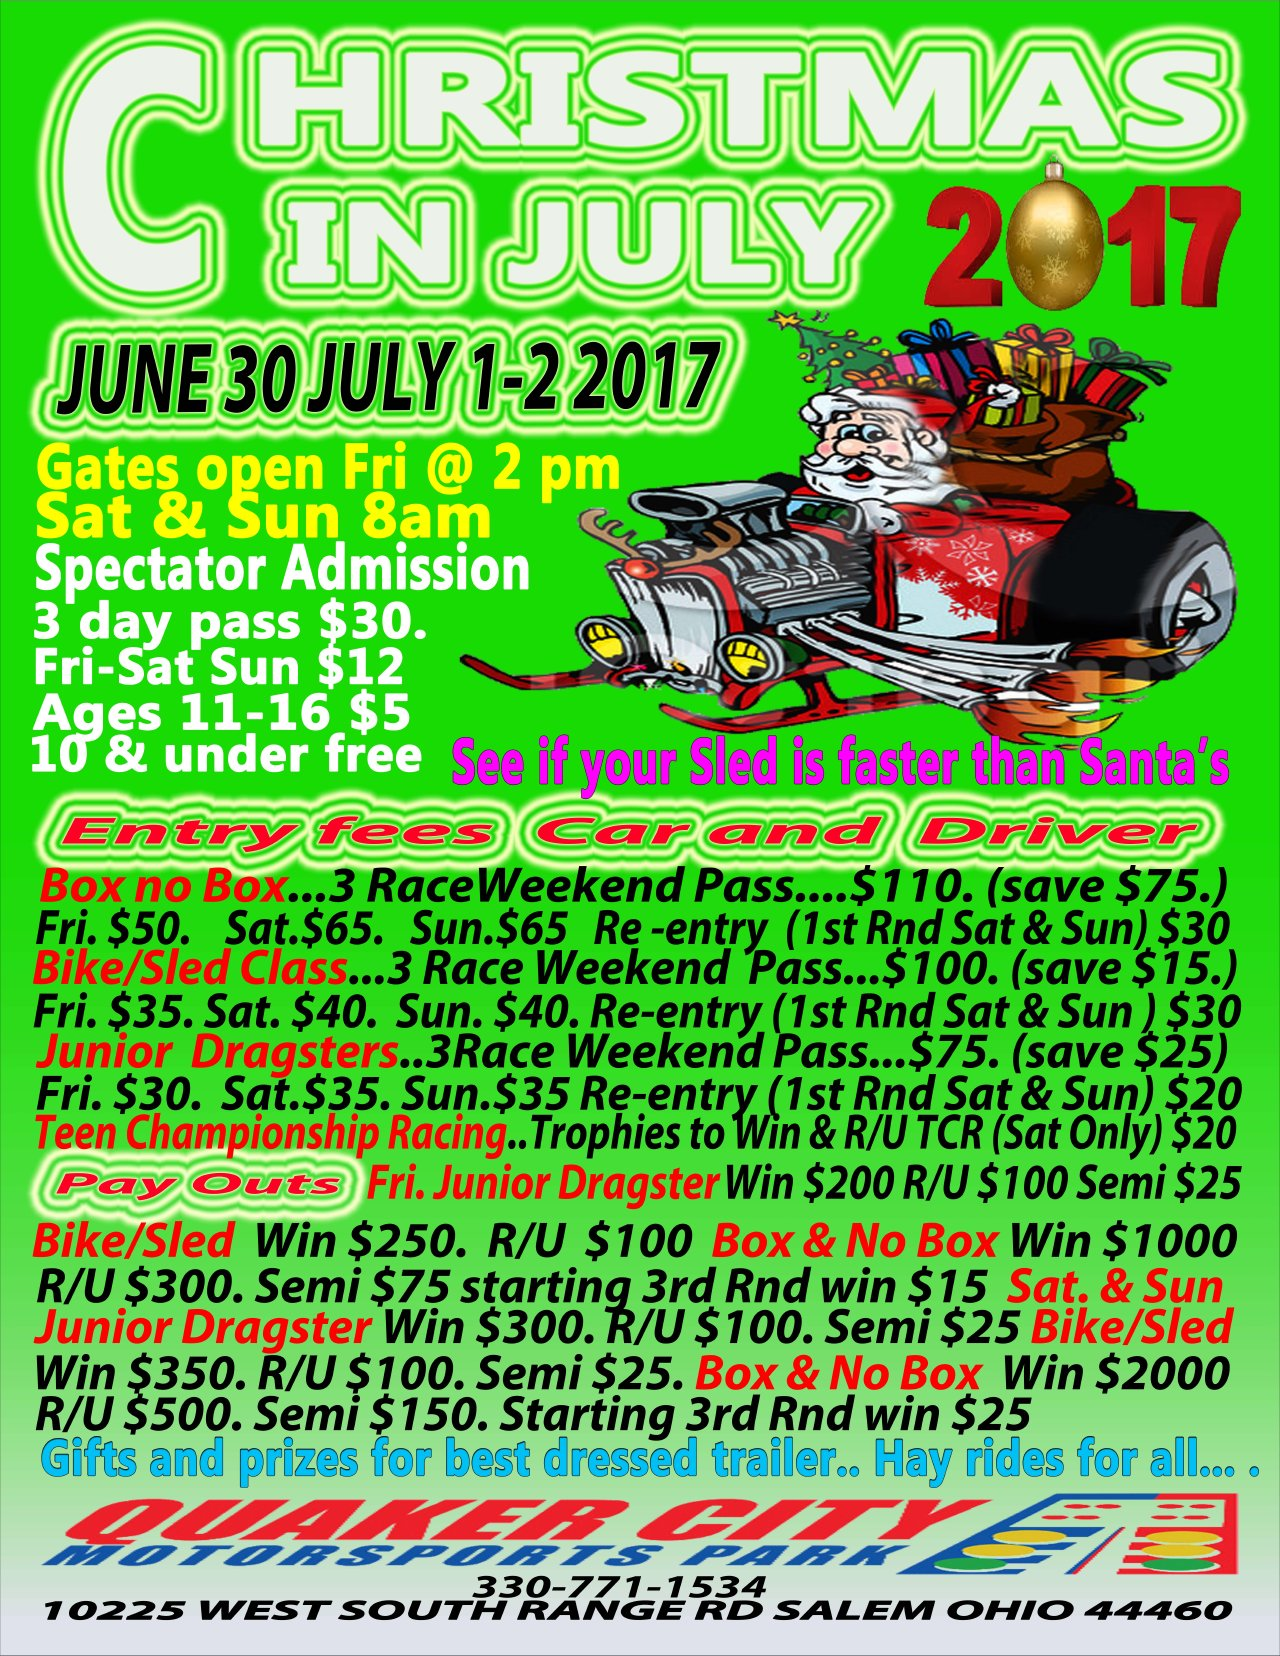 2017 CHRISTMAS IN JULY JUNE 30 JULY 1 JULY 2 Quaker City